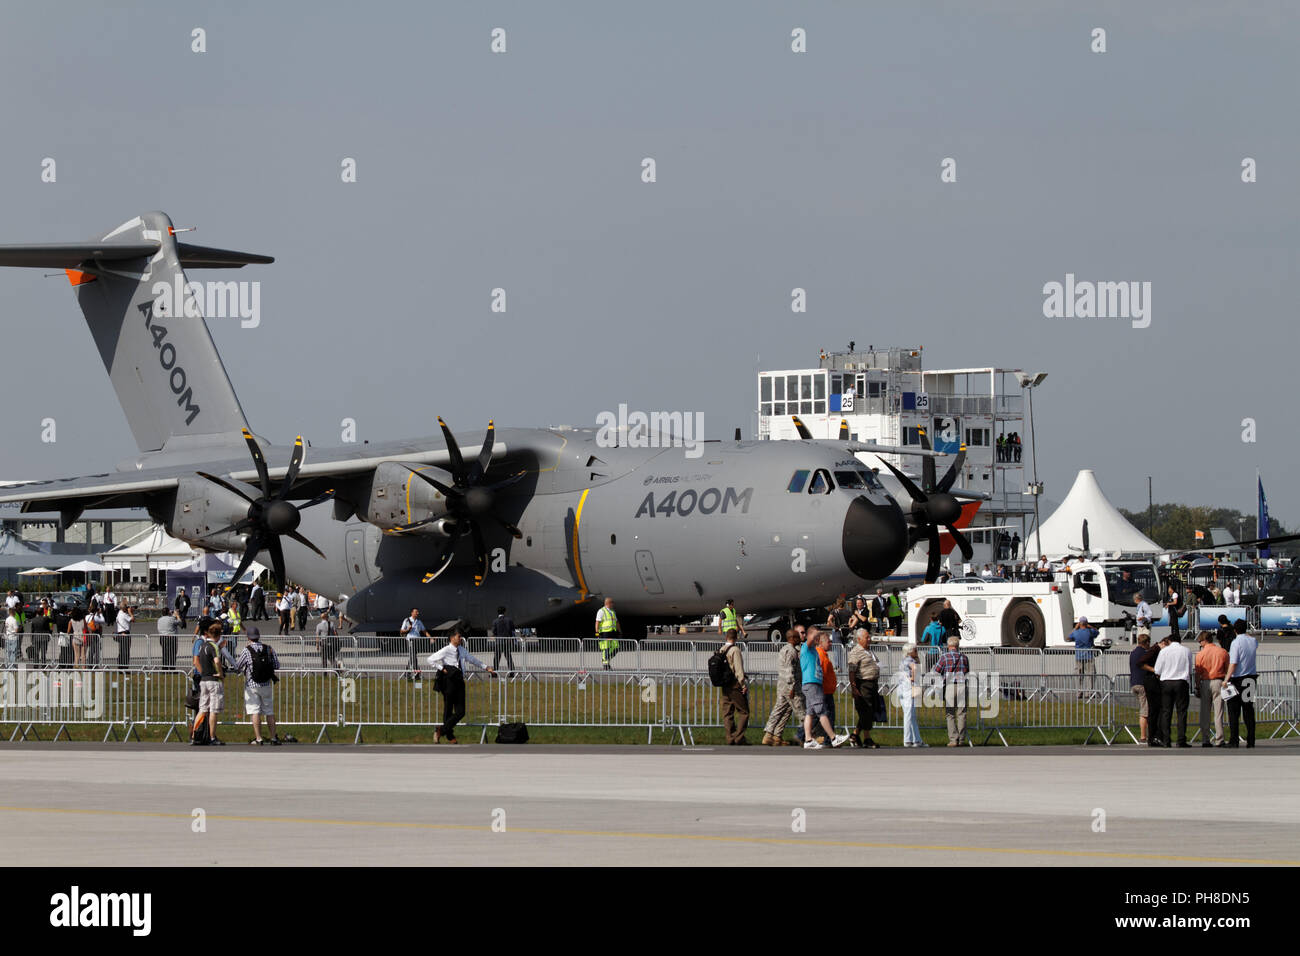 Airbus A400M. - Stock Image